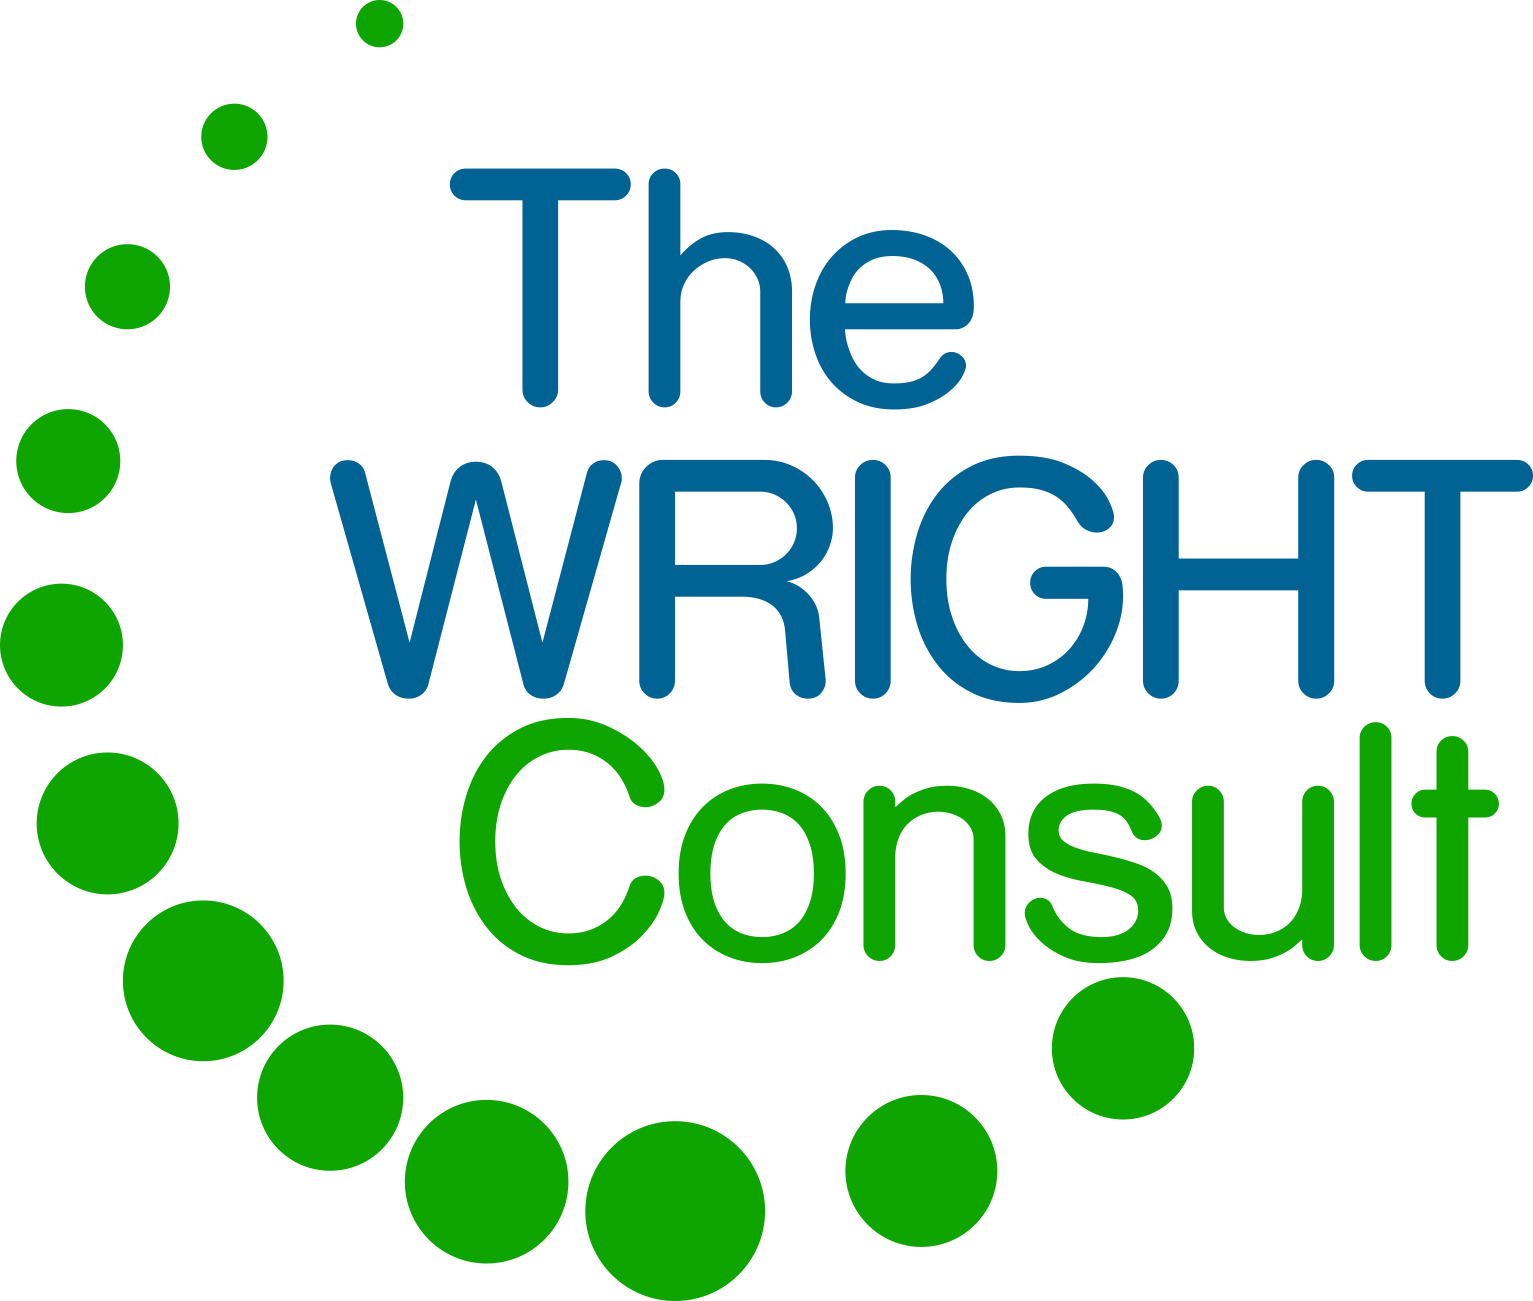 The WRIGHT Consult